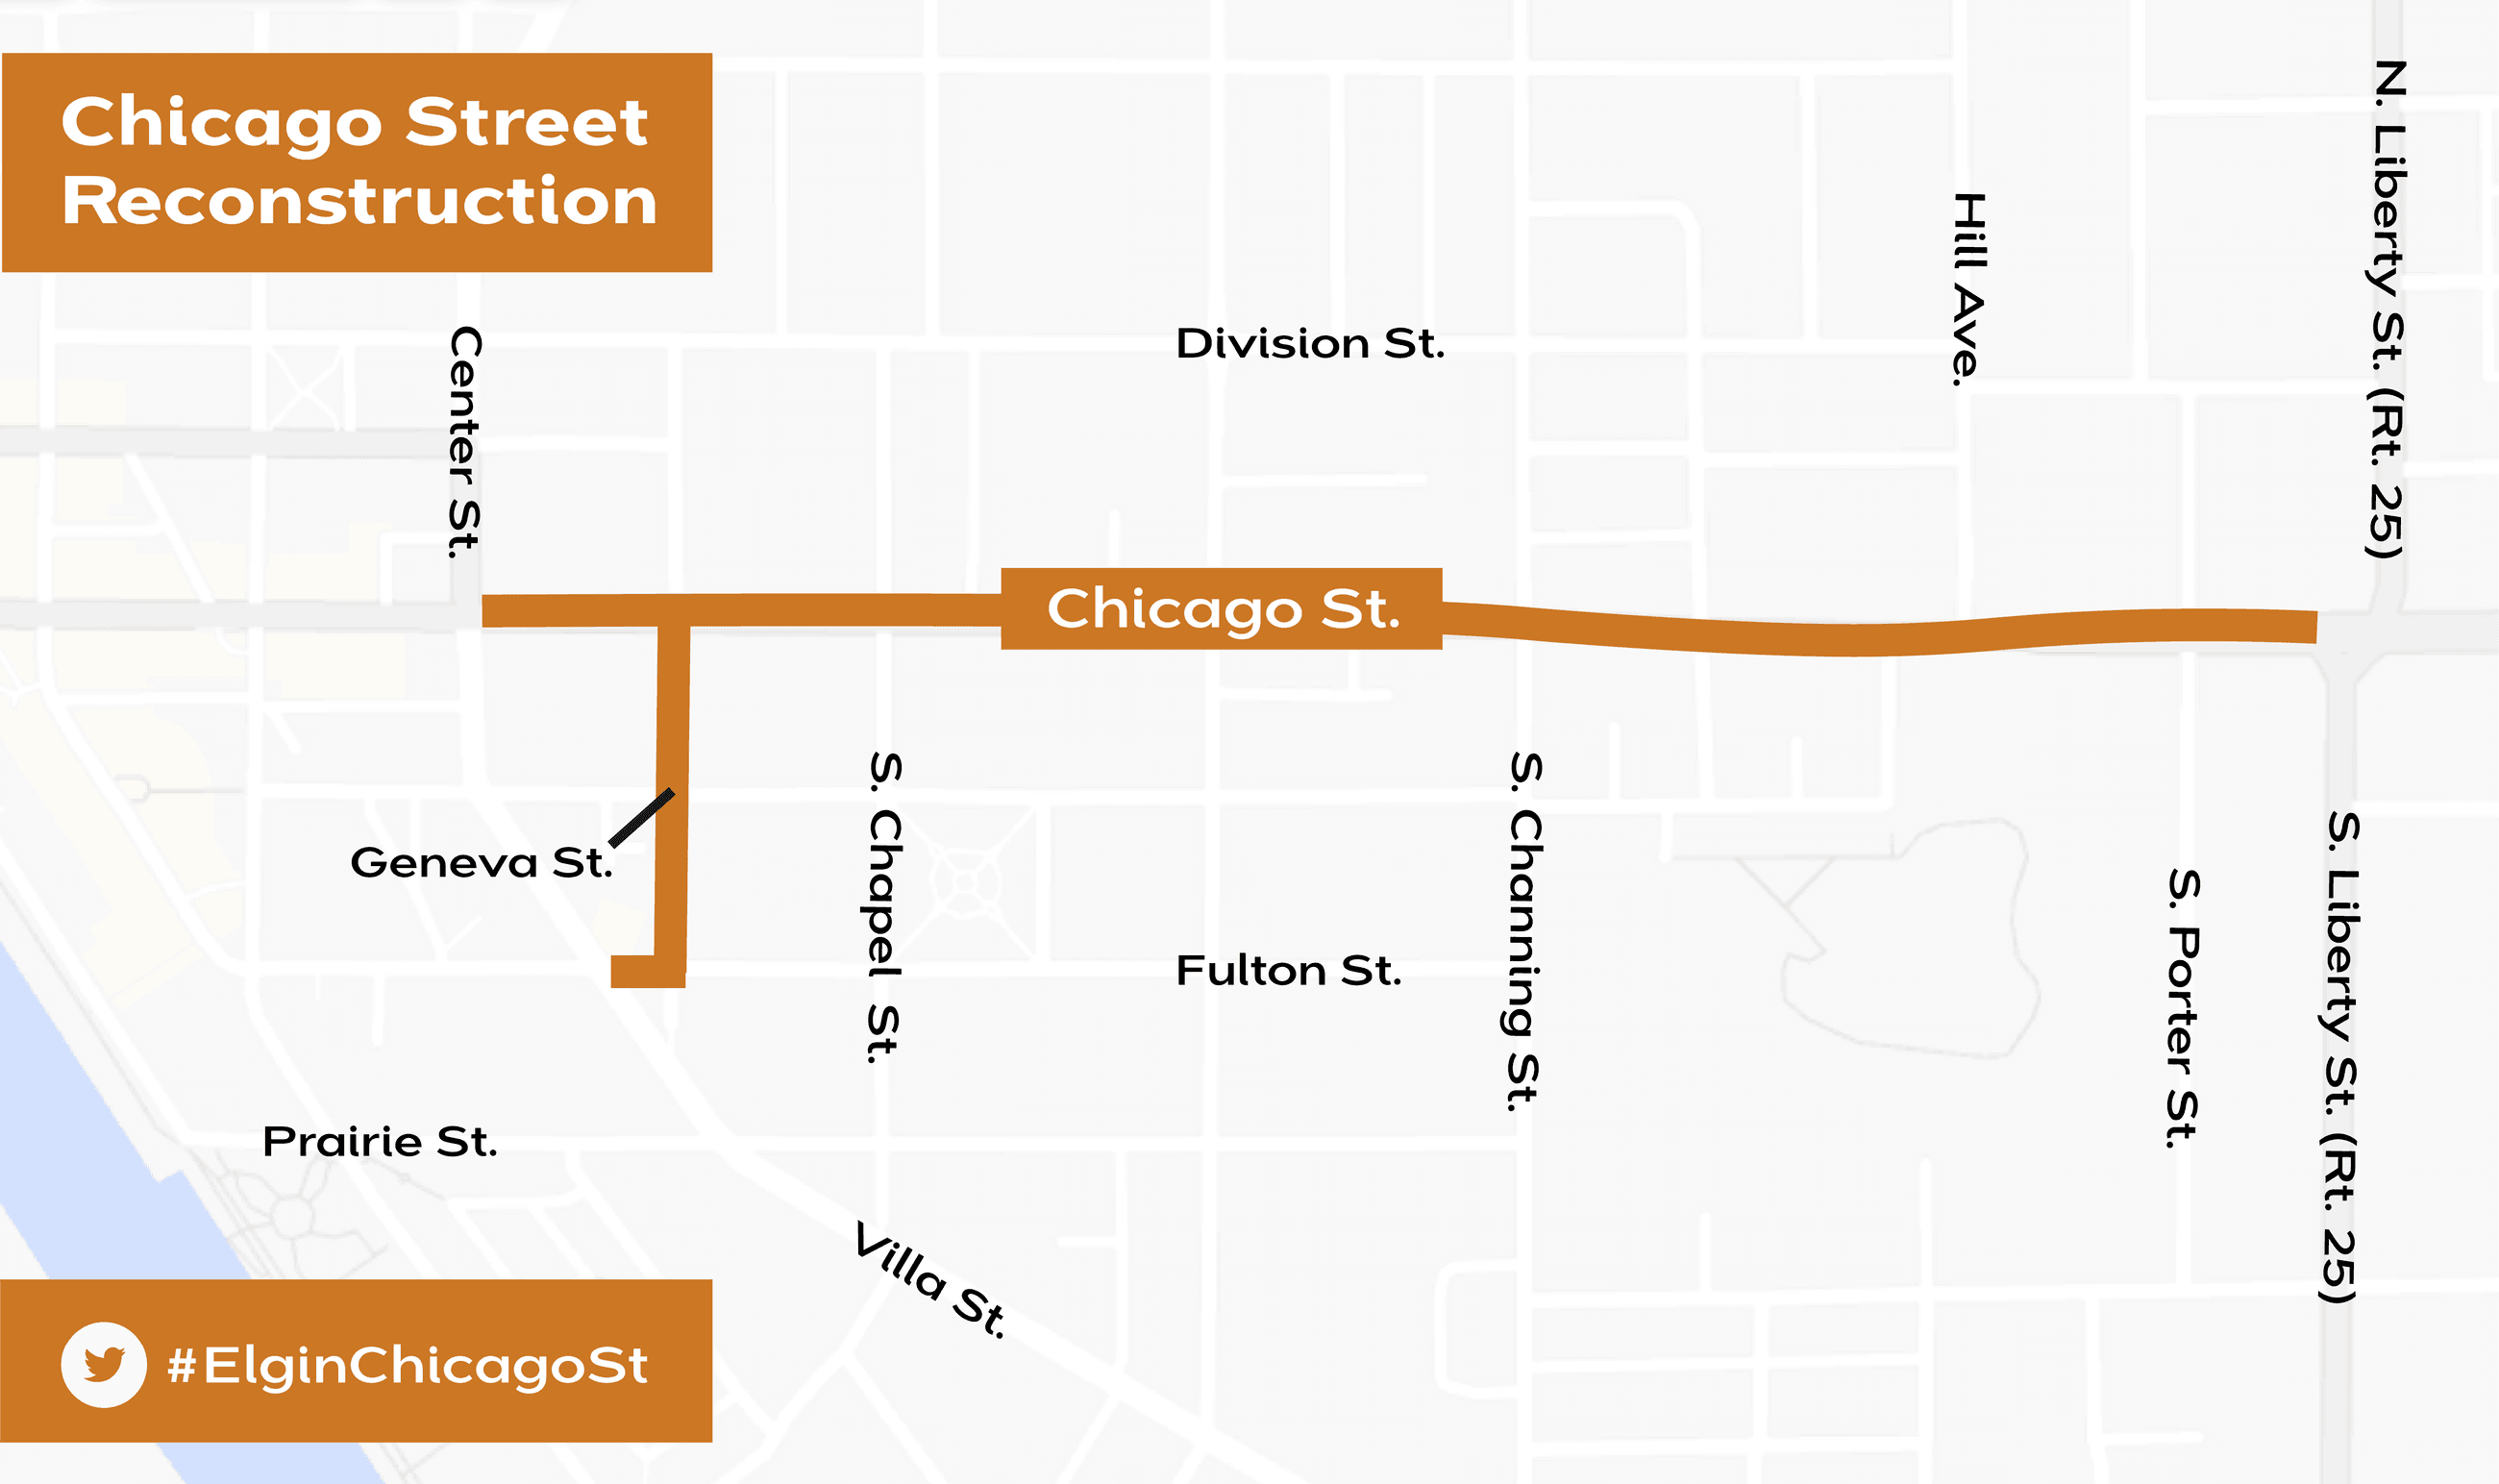 map of chicago street reconstruction project area